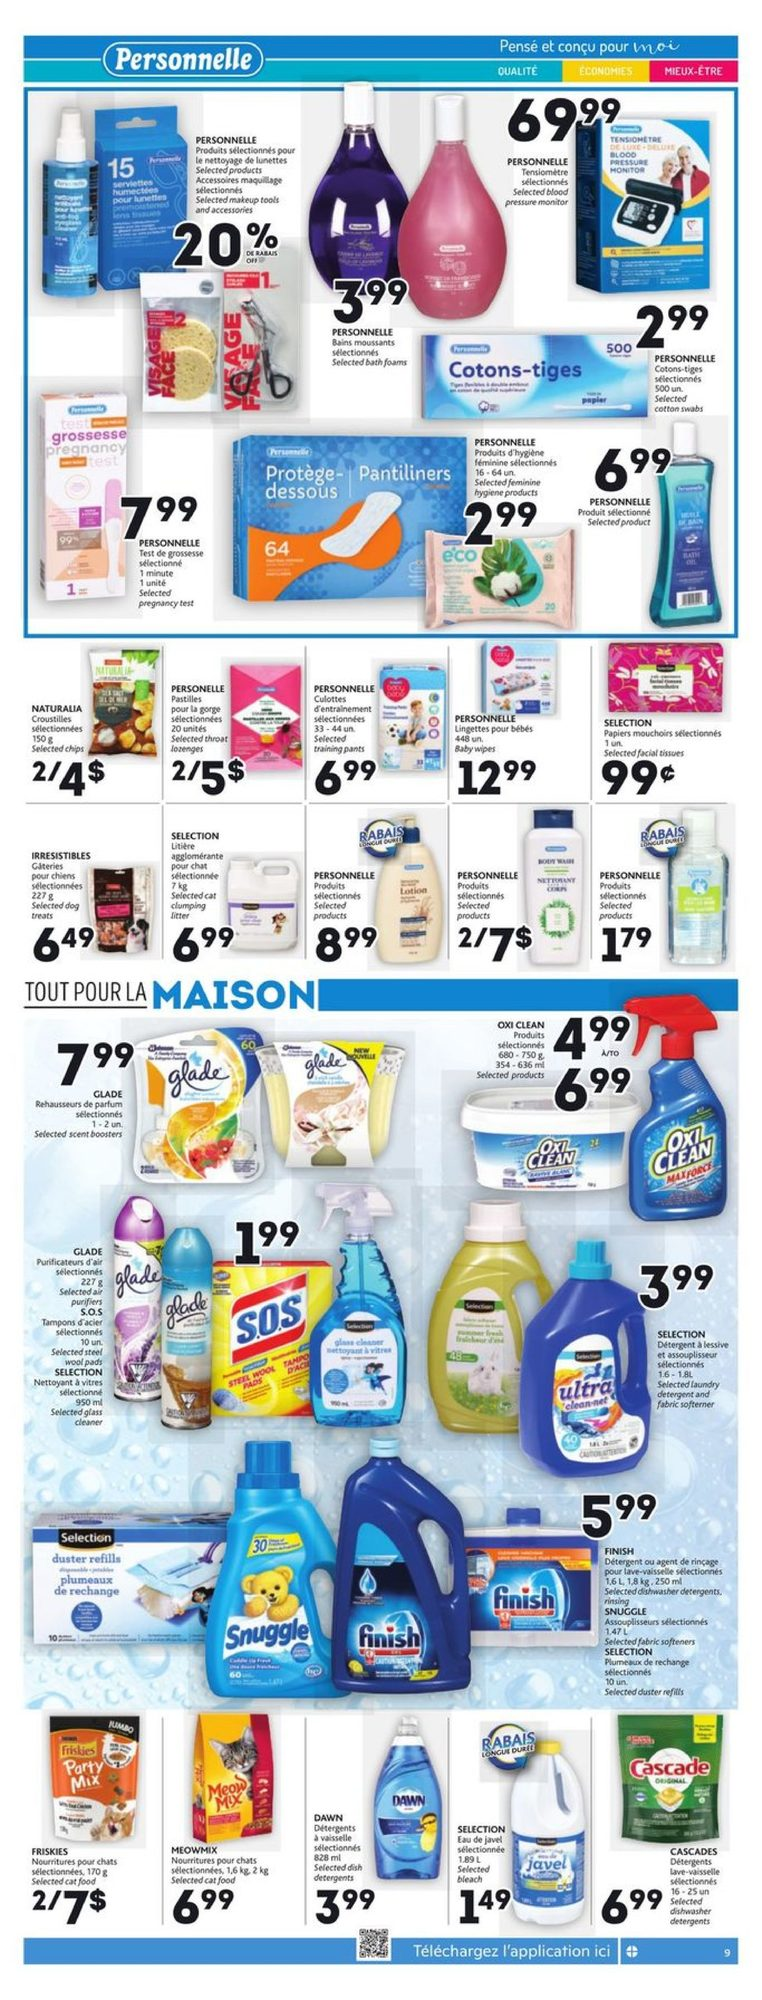 Brunet - Weekly Flyer Specials - Page 9